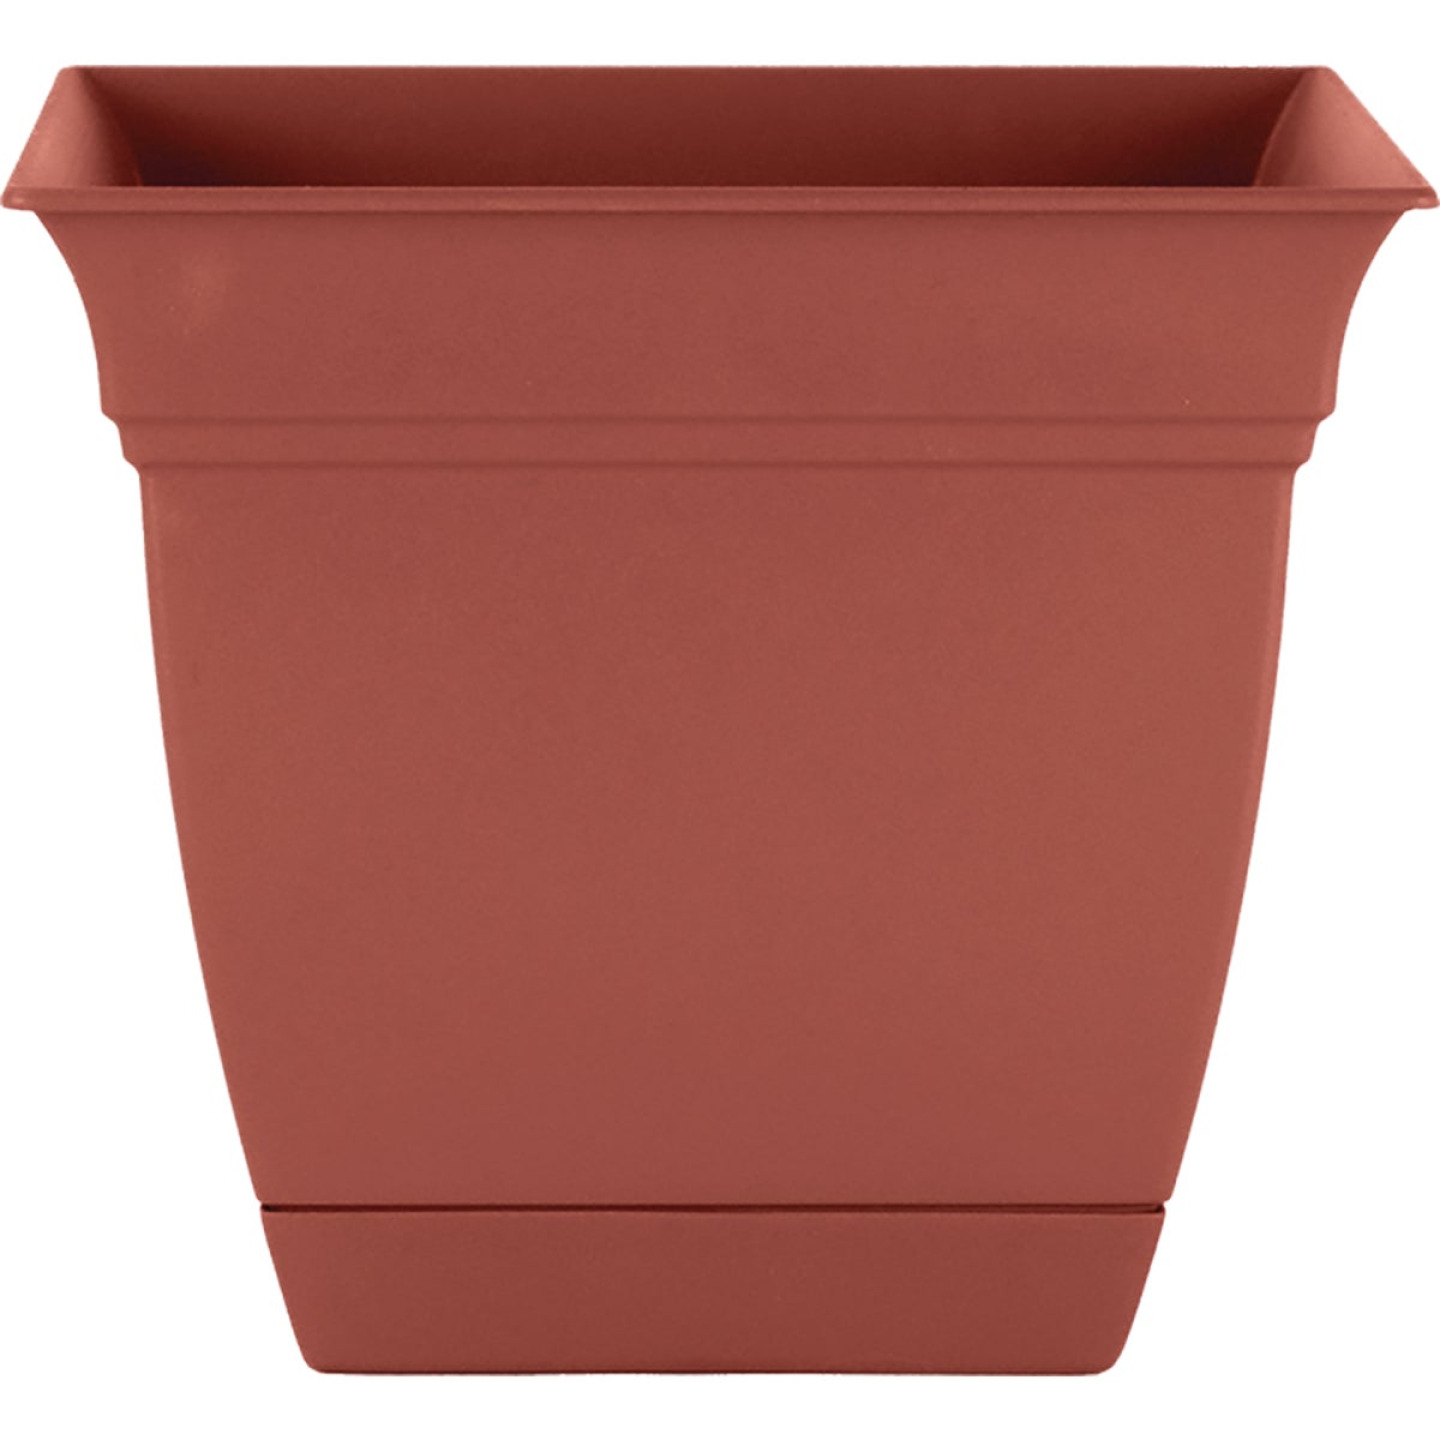 HC Companies Eclipse 10 In. x 10 In. x 8.75 In. Resin Clay Planter Image 1